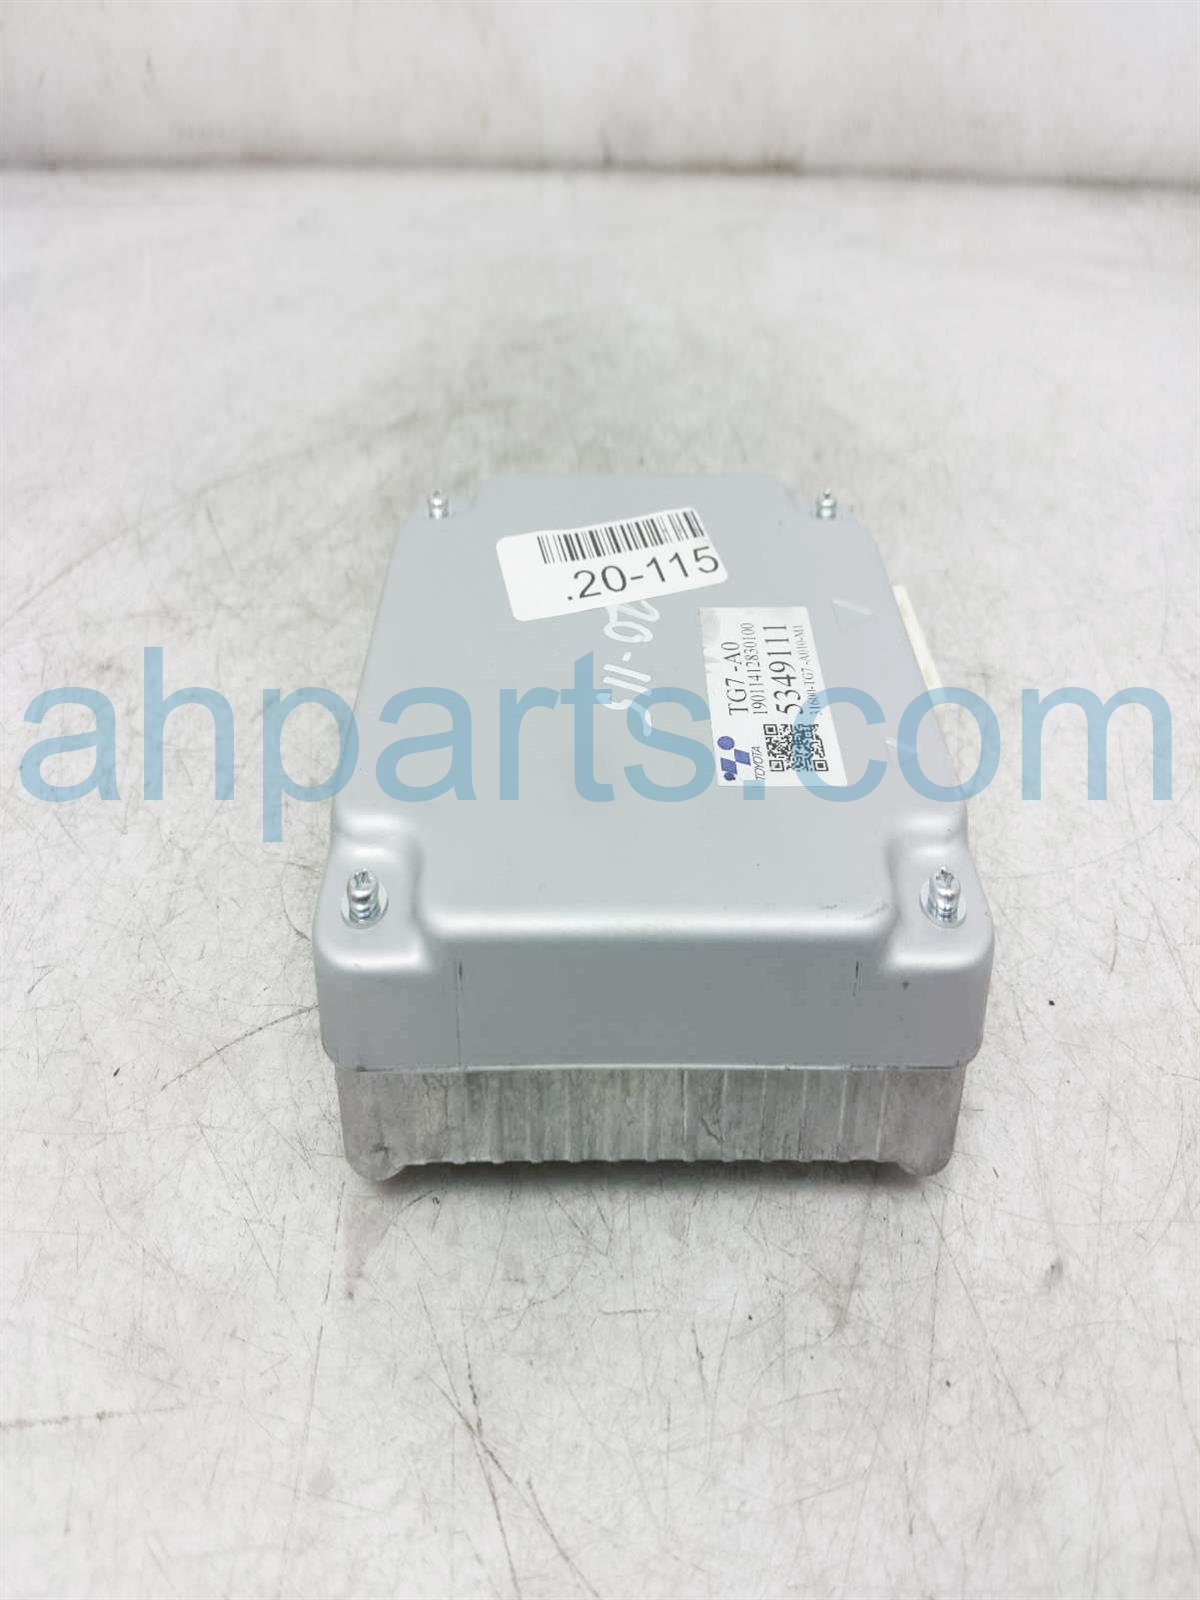 2019 Honda Passport Voltage Stabilizer Module 31600 TG7 A010 M1 Replacement